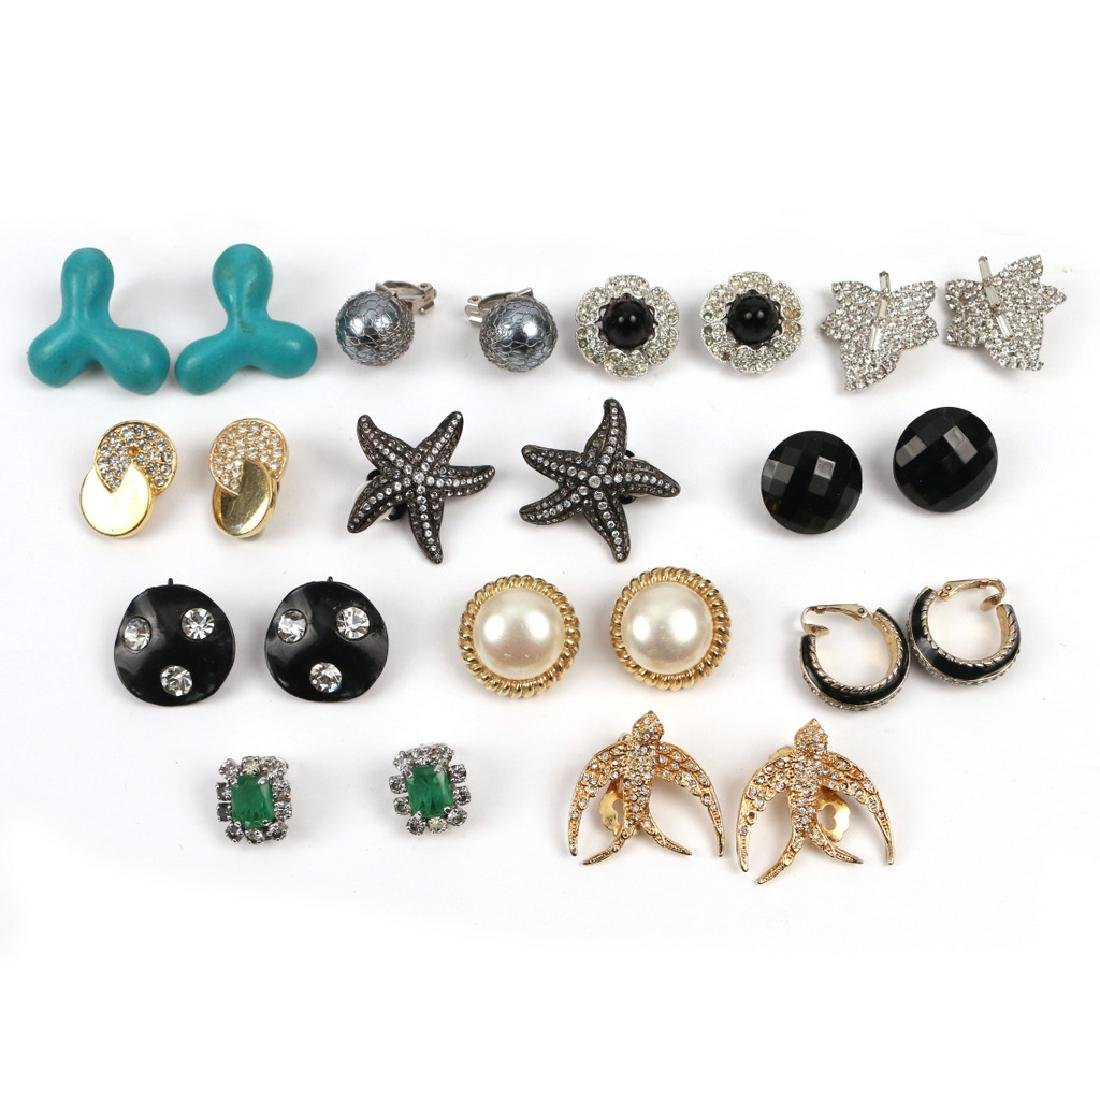 (46pc) 23 PAIRS VARIOUS COSTUME CLIP EARRINGS - 2